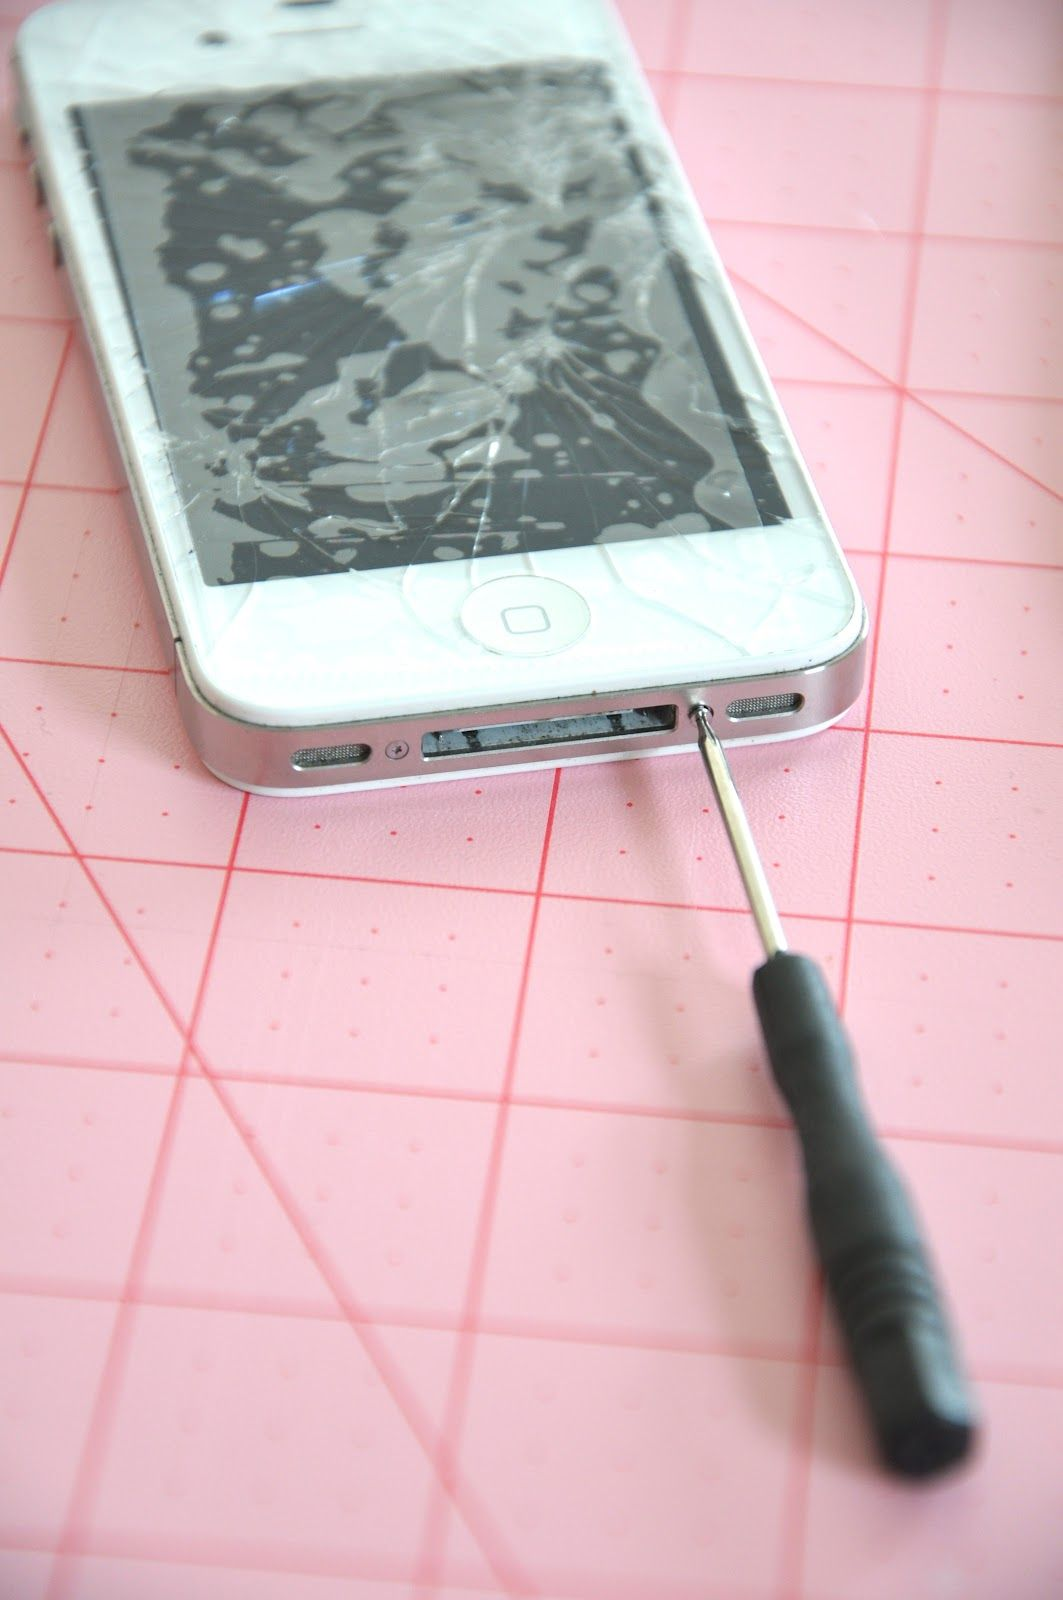 how to replace your iphone 4 screen - resources for doing it